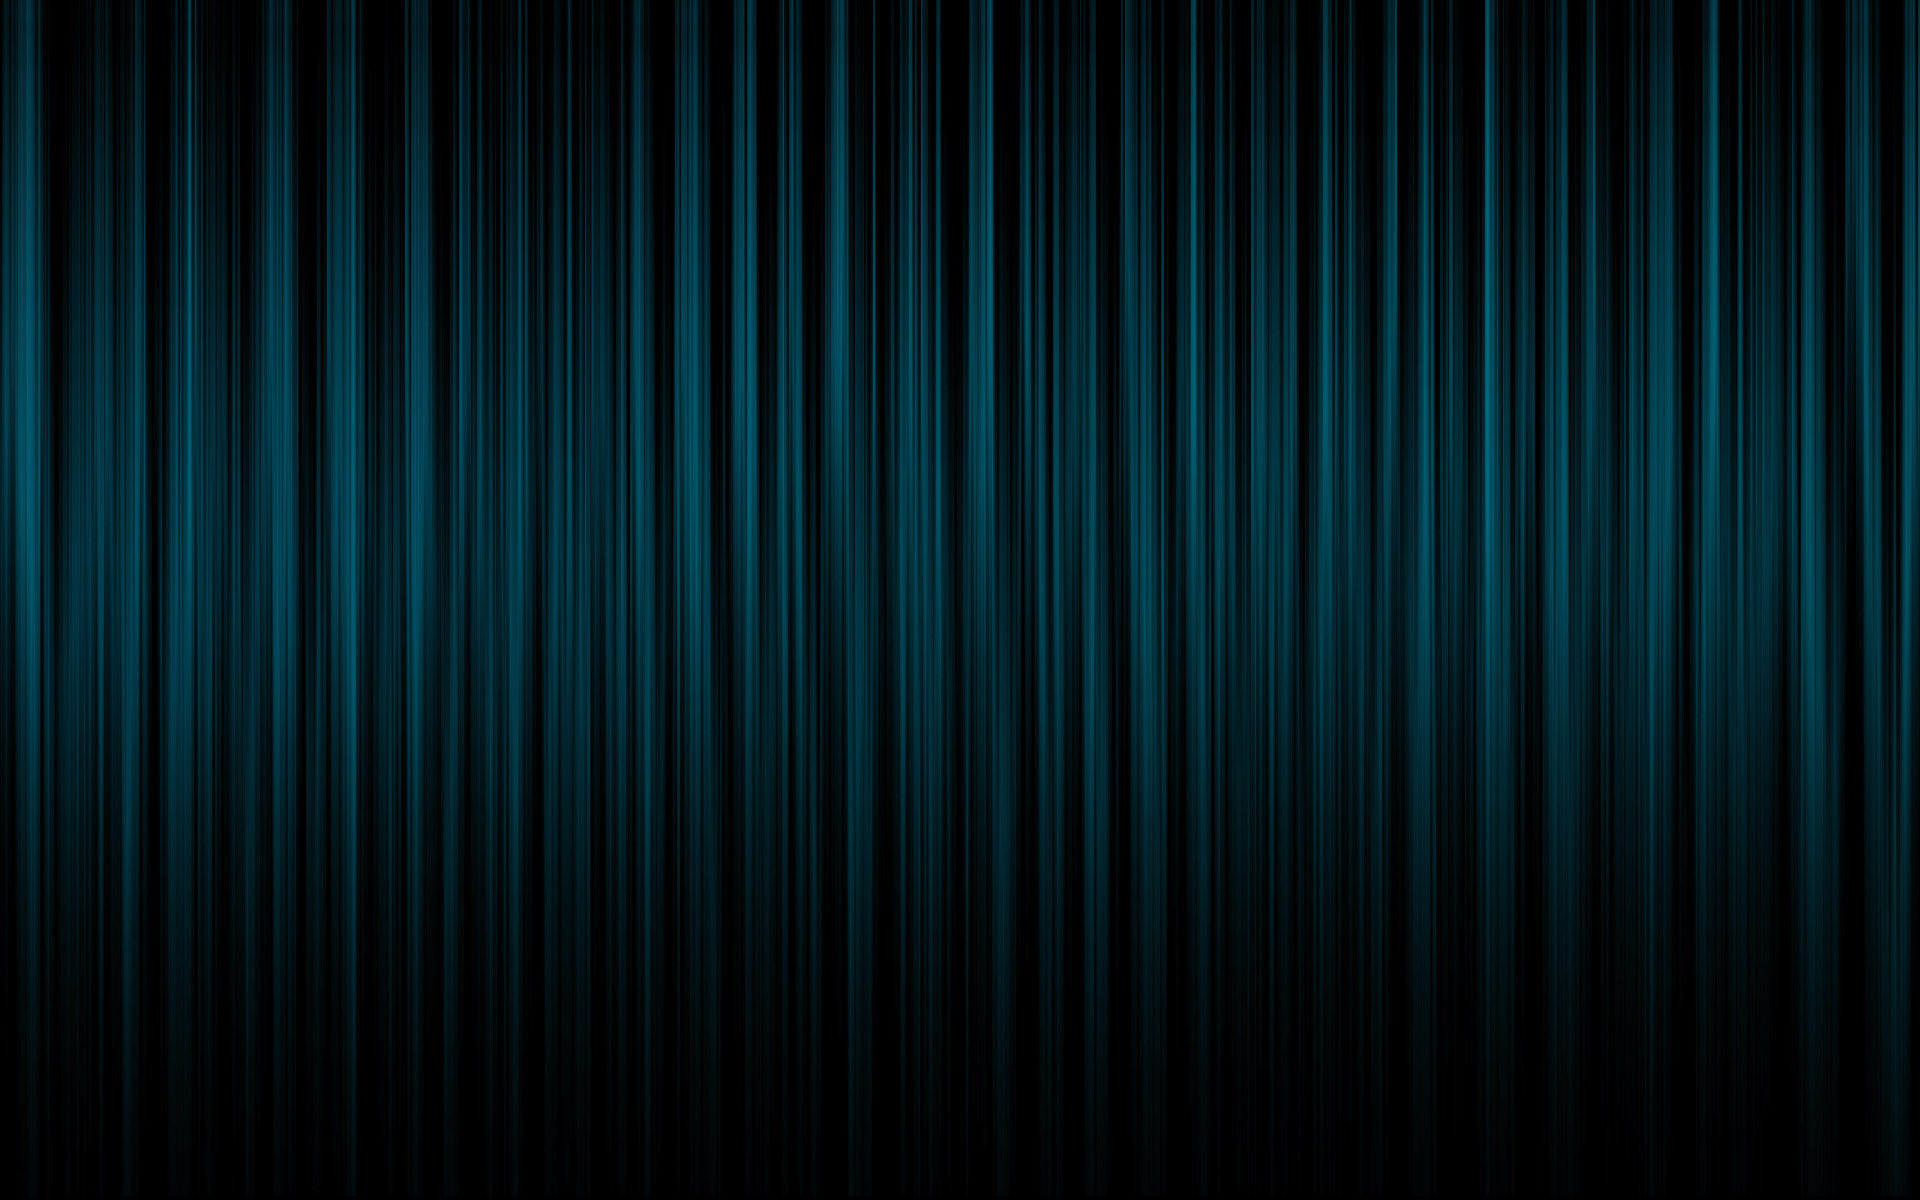 Sea green lining curtain with black background 3d gaming for Cortinas 10 x 10